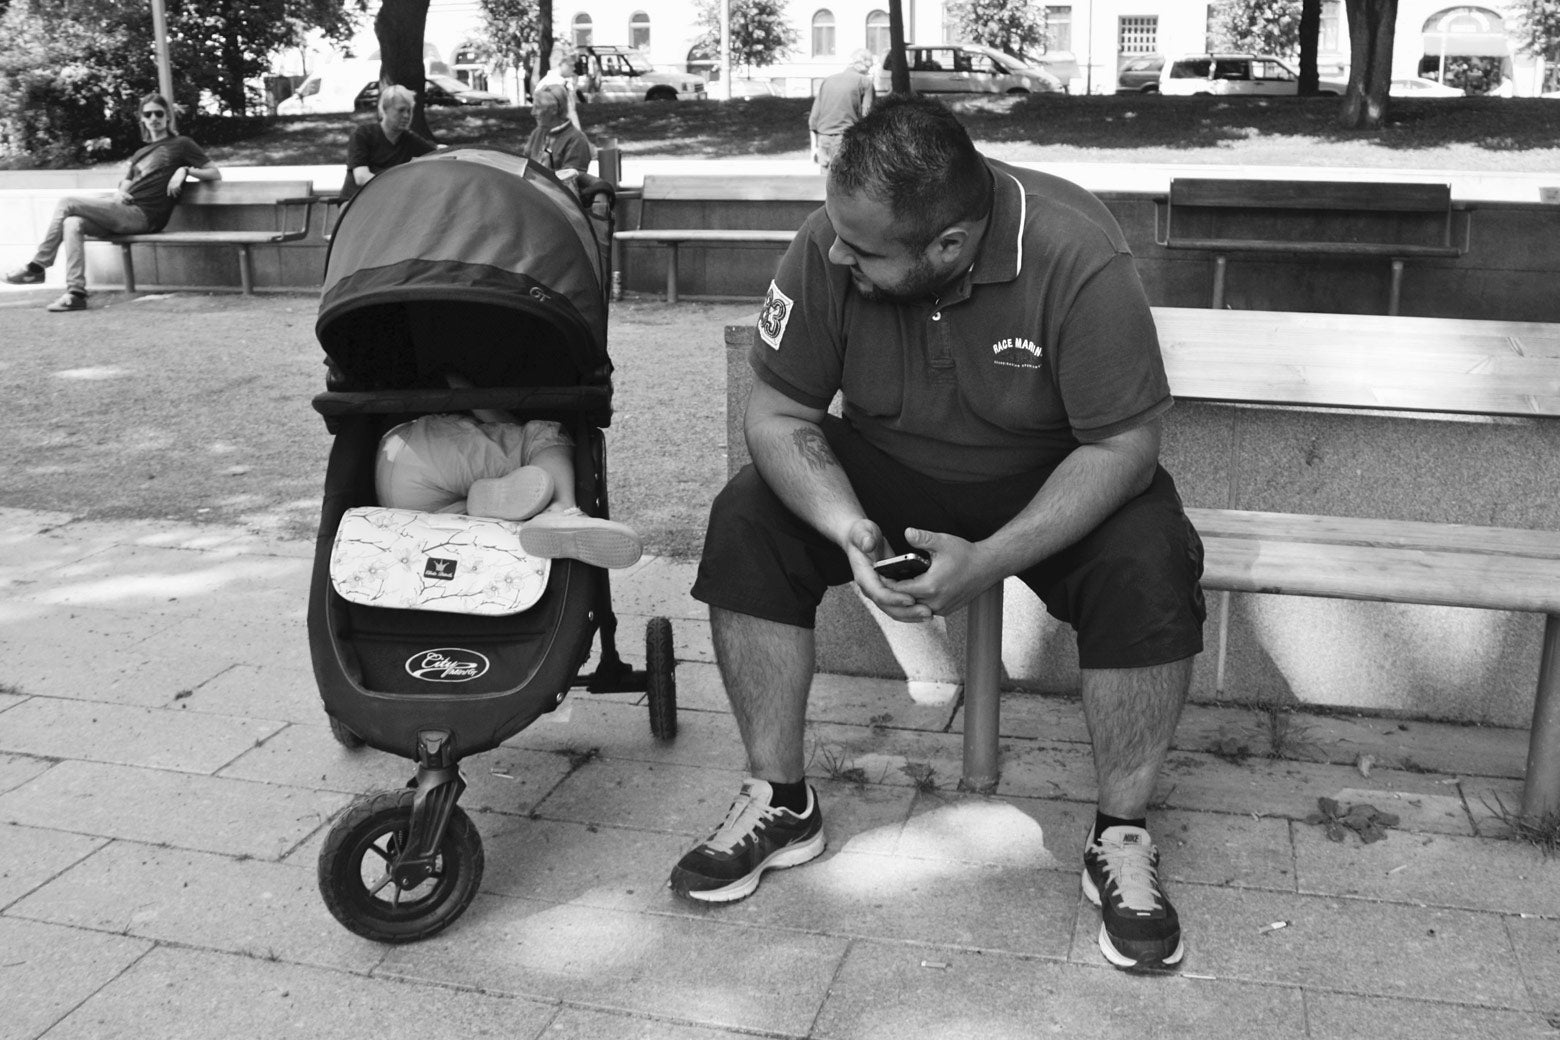 A father stops for a break on a park bench while his daughter naps in her stroller.